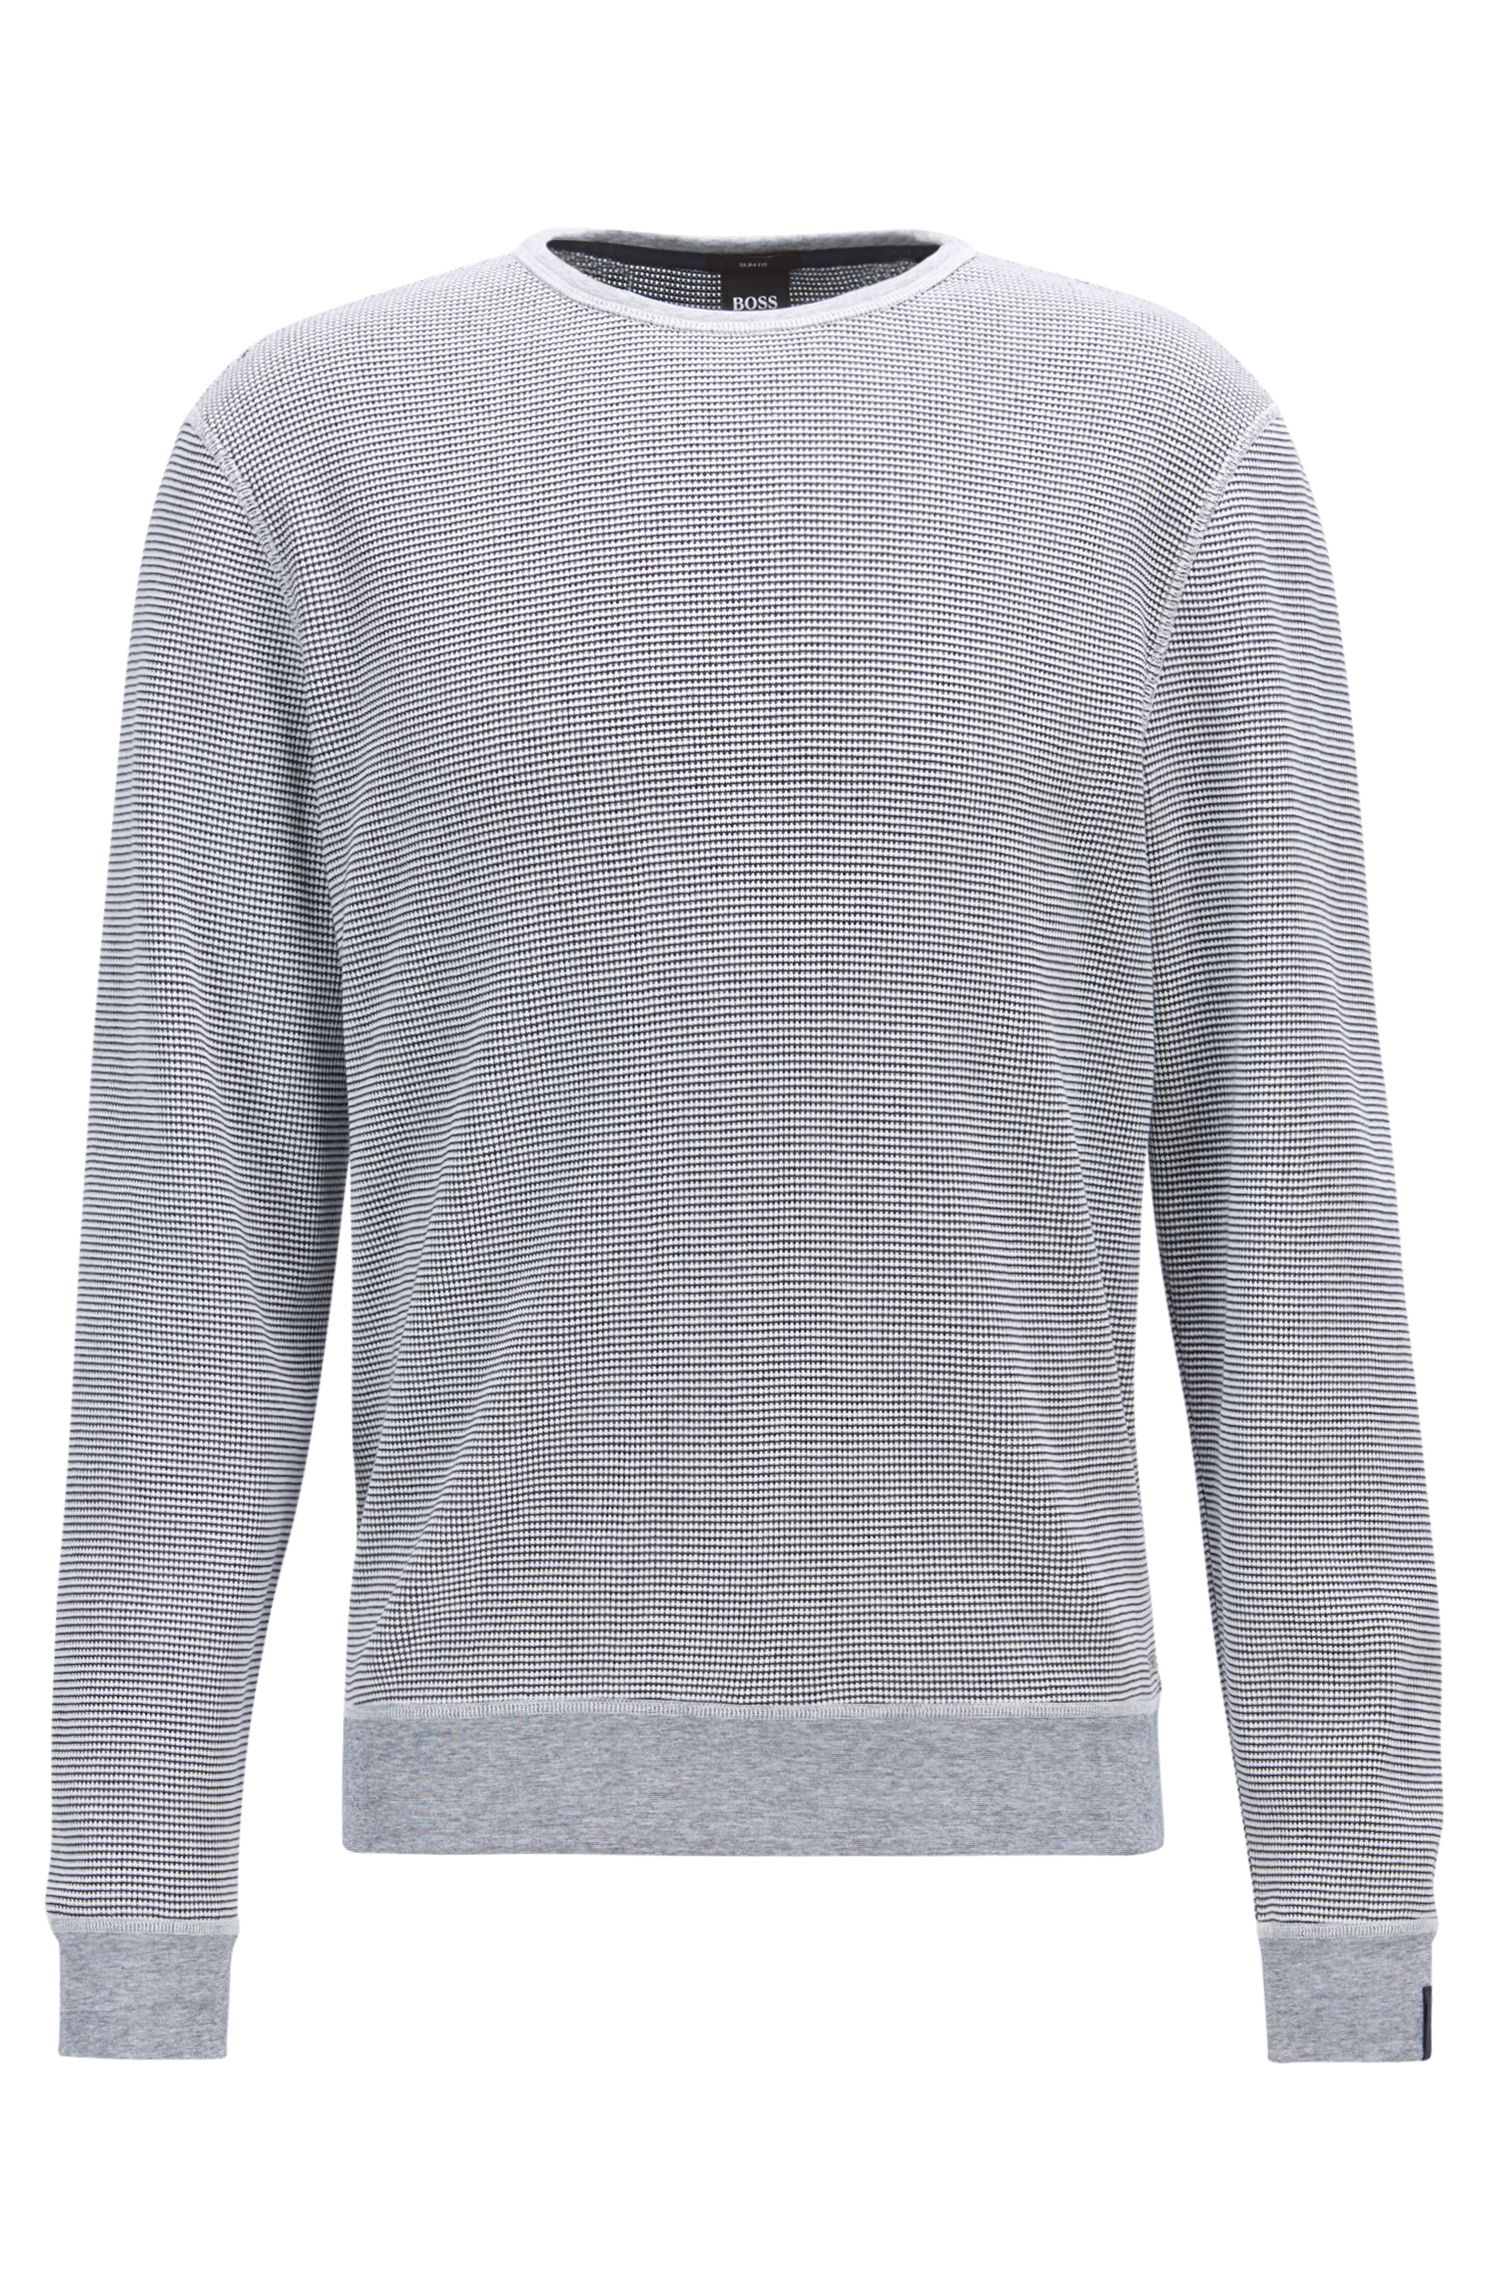 Cotton Knit Sweatshirt | Skubic